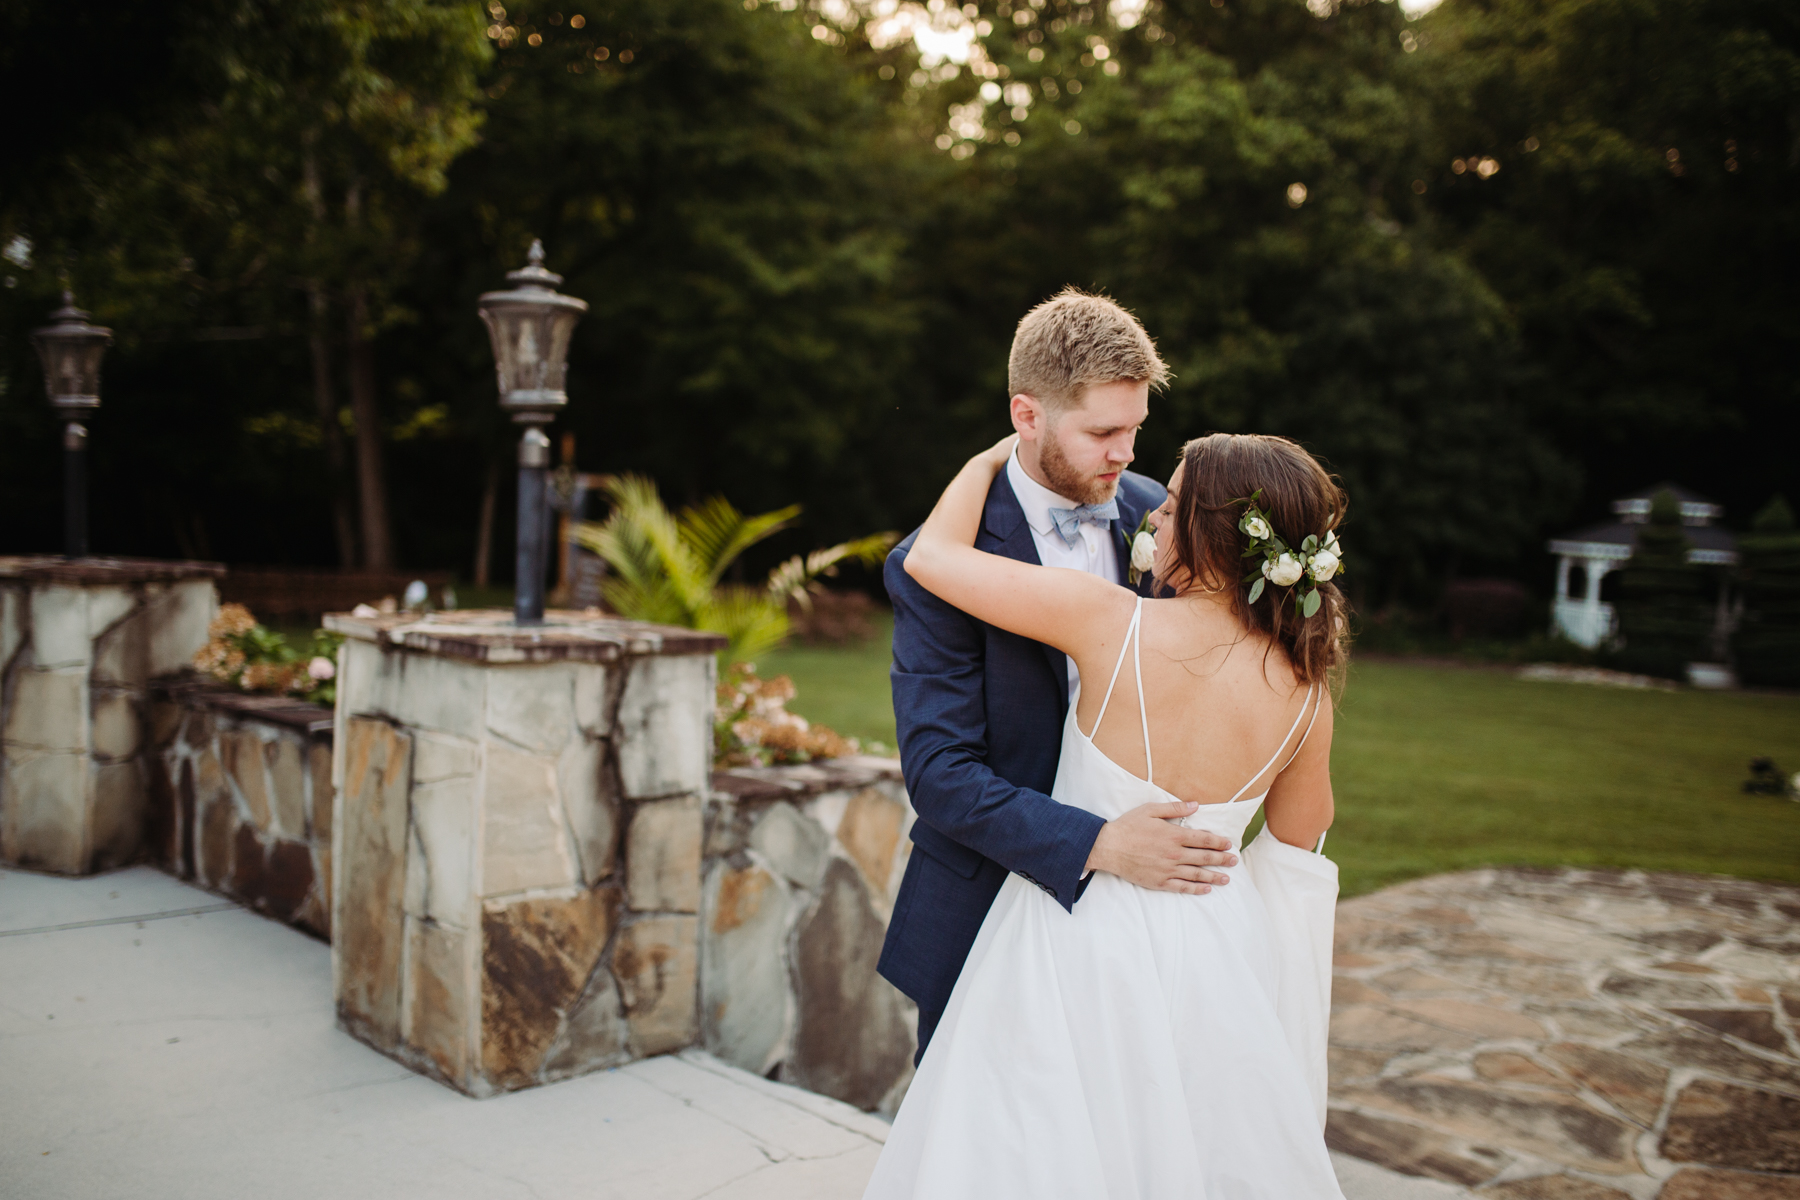 bride and groom portraits at a Sunny summer wedding at Dara's Garden in Knoxville, Tennessee